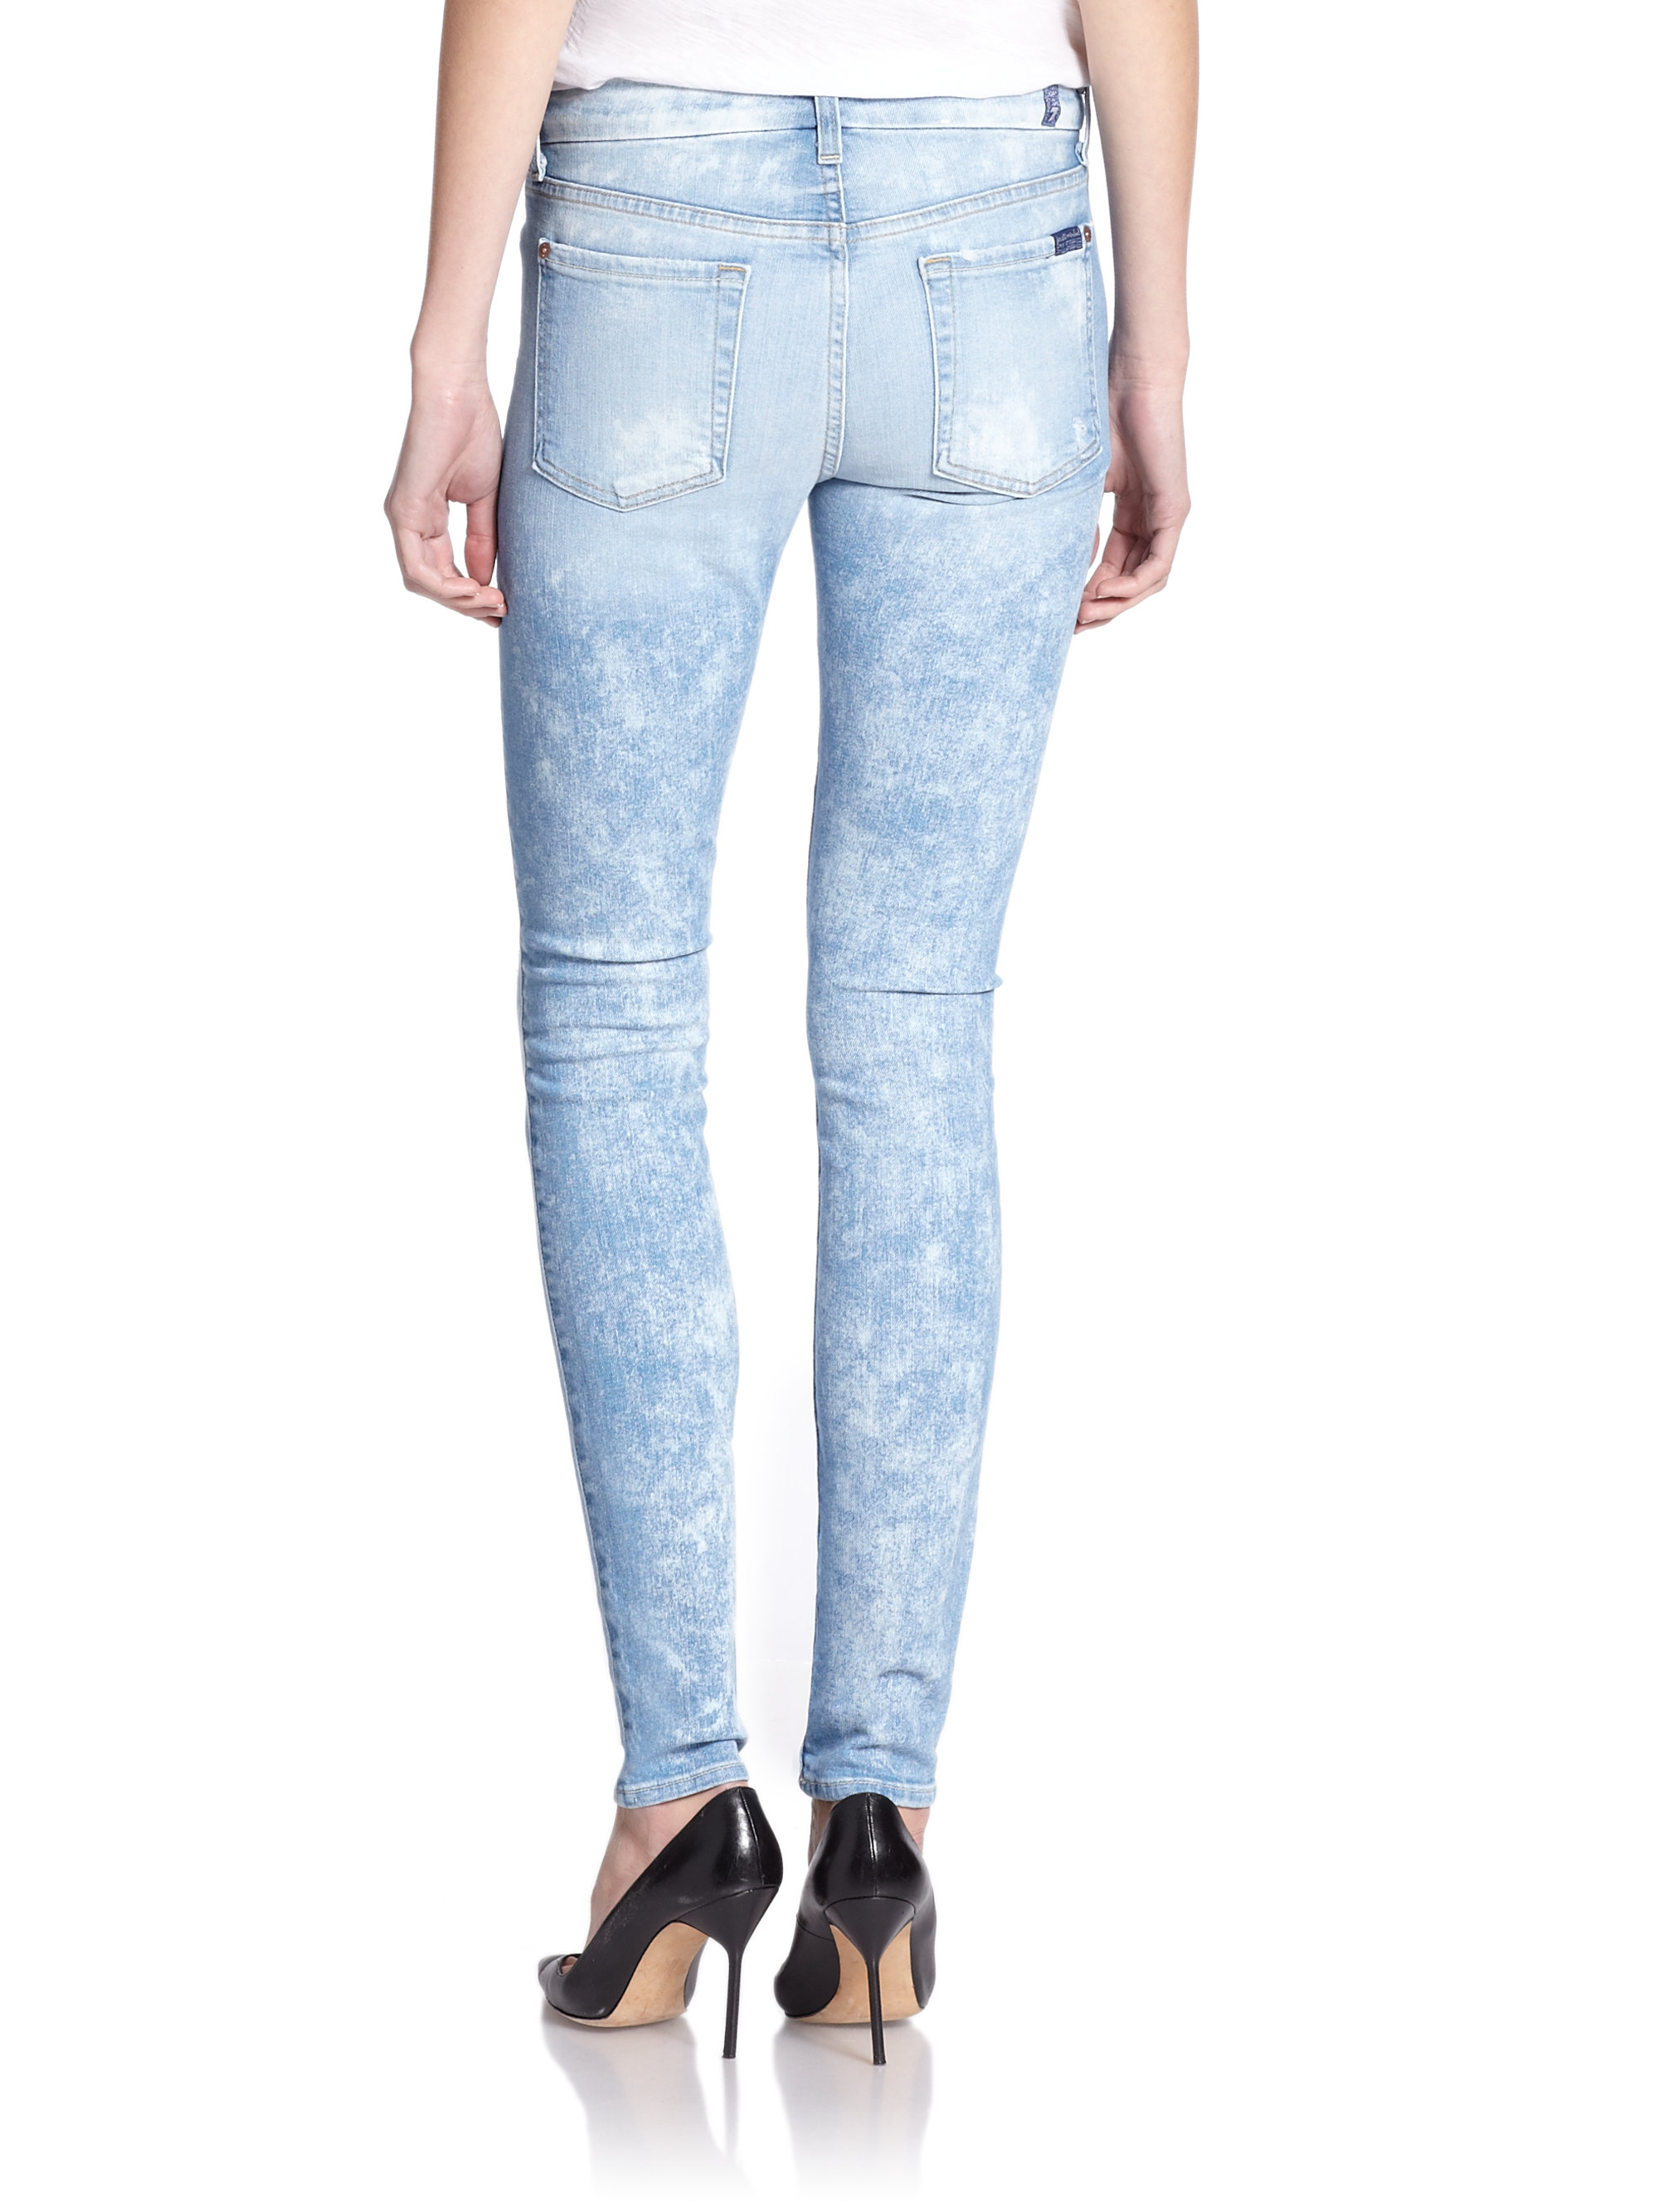 lyst 7 for all mankind distressed skinny jeans in blue. Black Bedroom Furniture Sets. Home Design Ideas